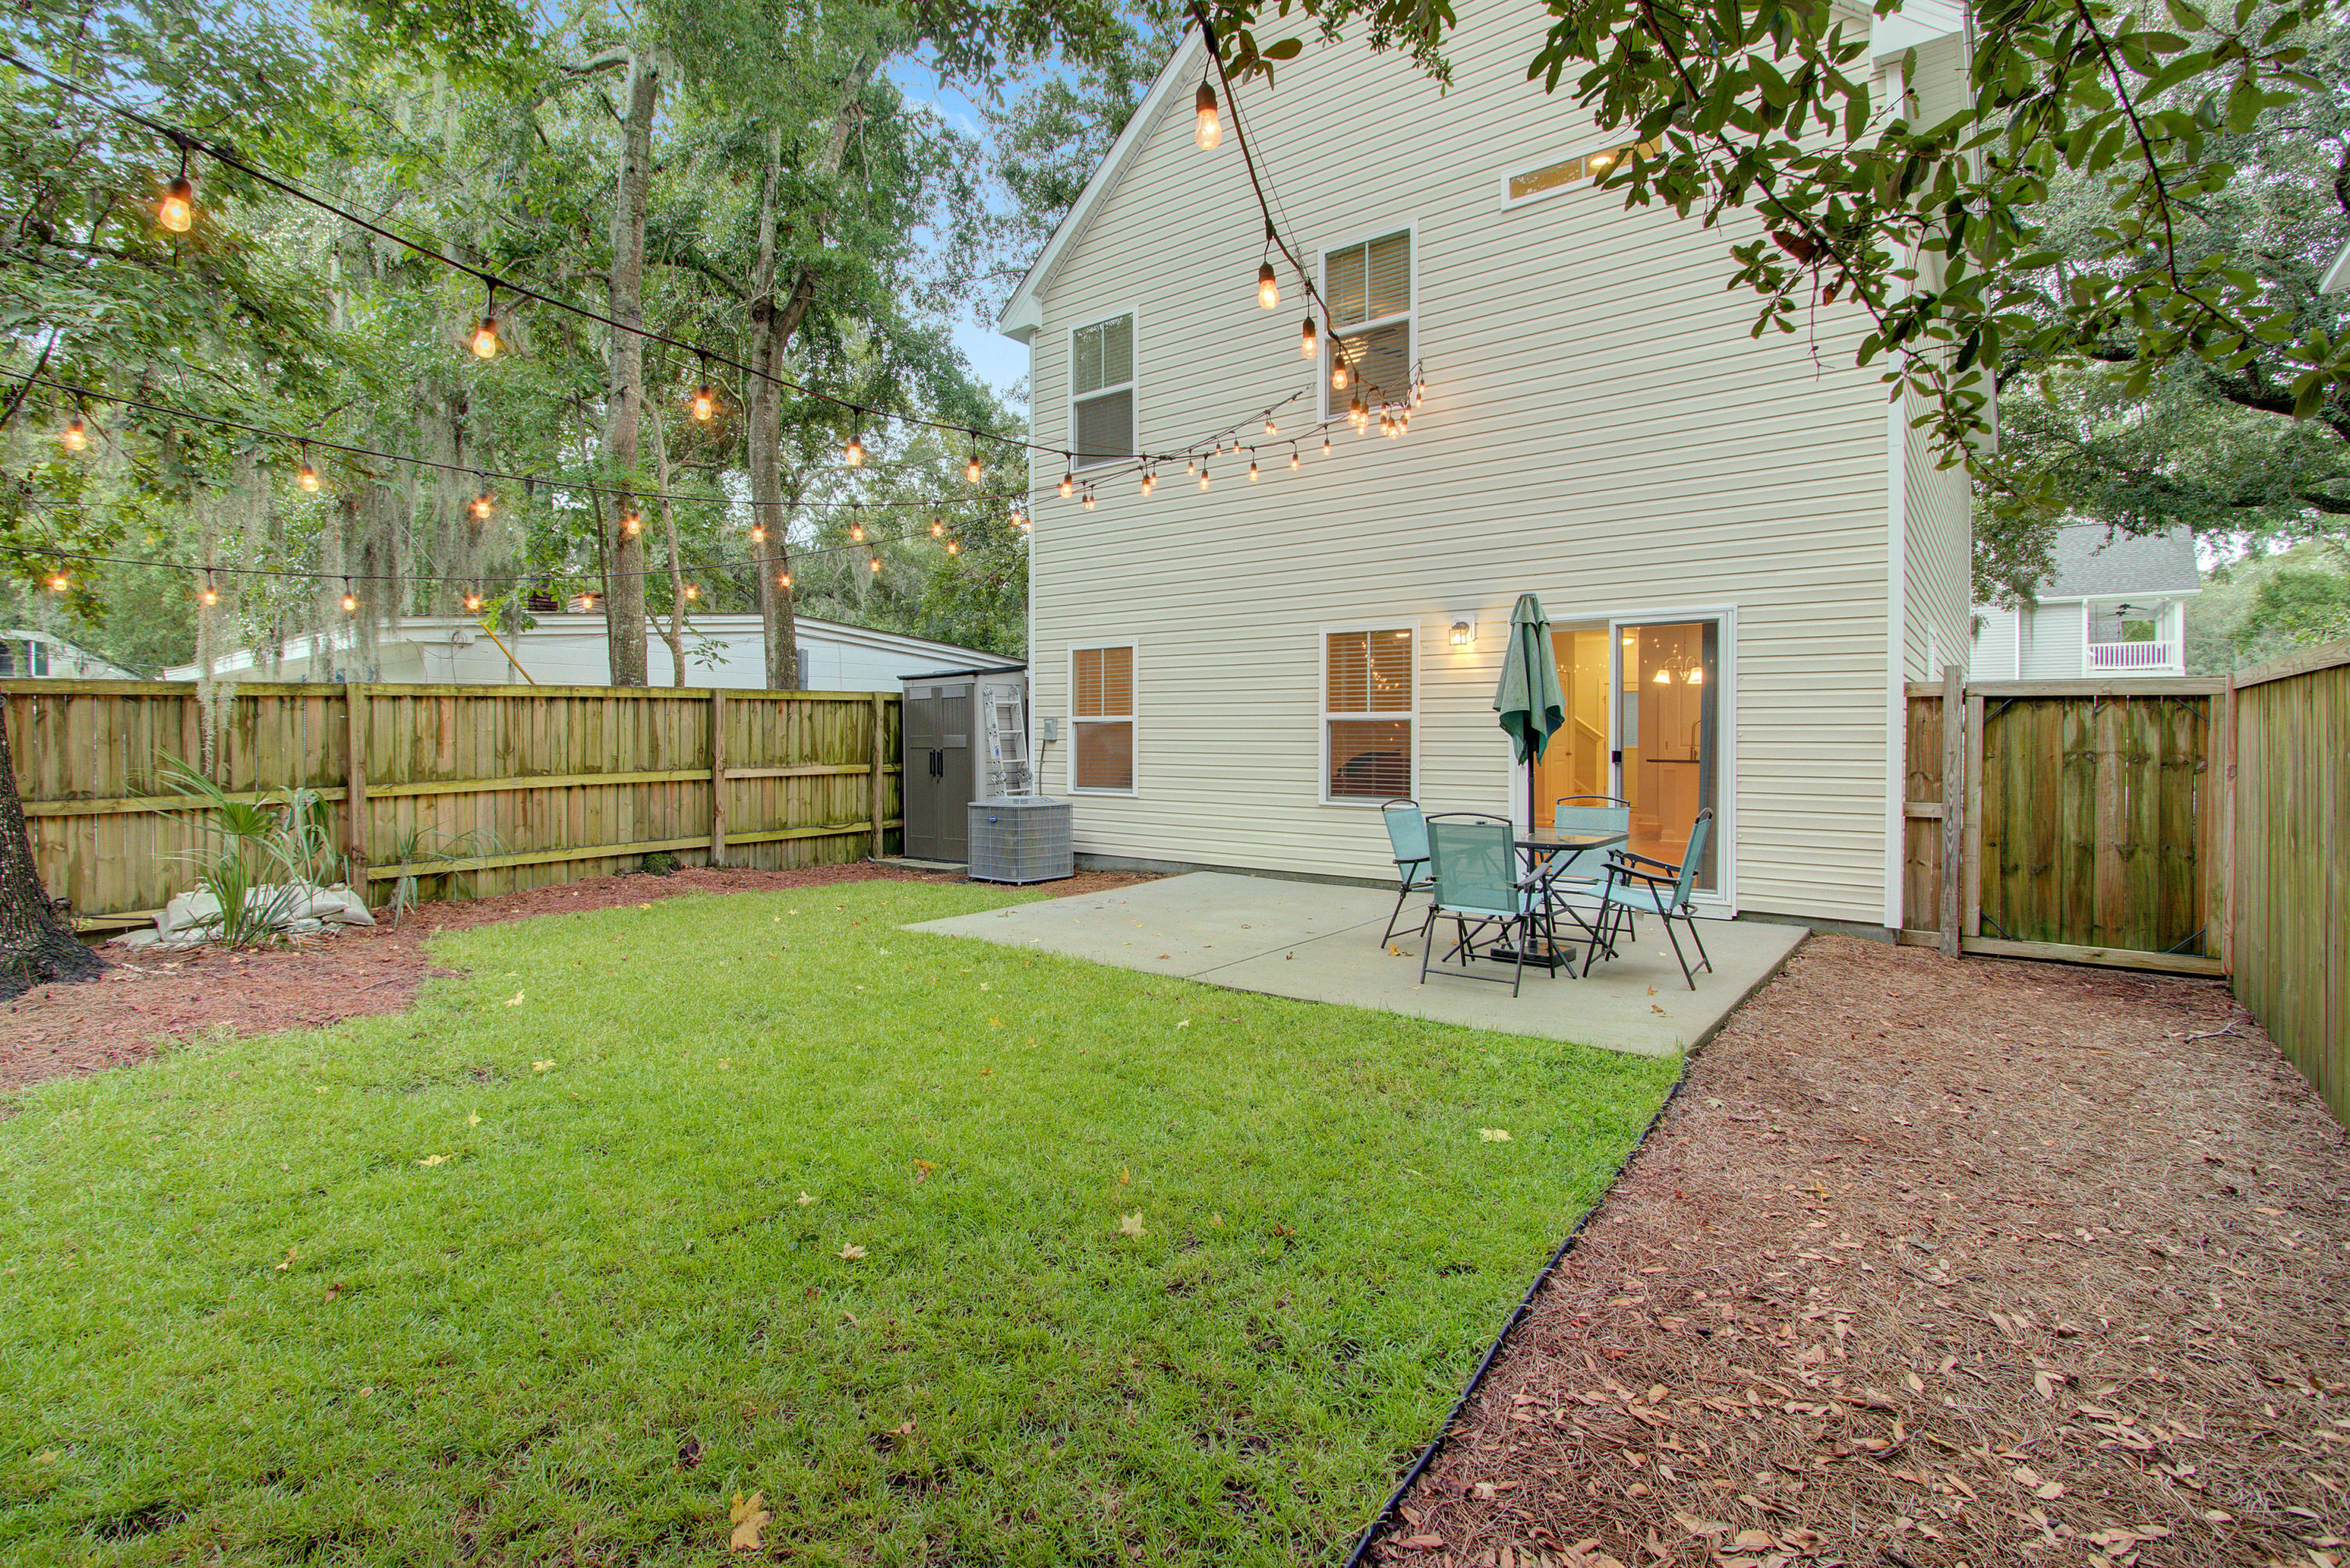 Fairfield Place Homes For Sale - 1507 Morgan Campbell, Charleston, SC - 4